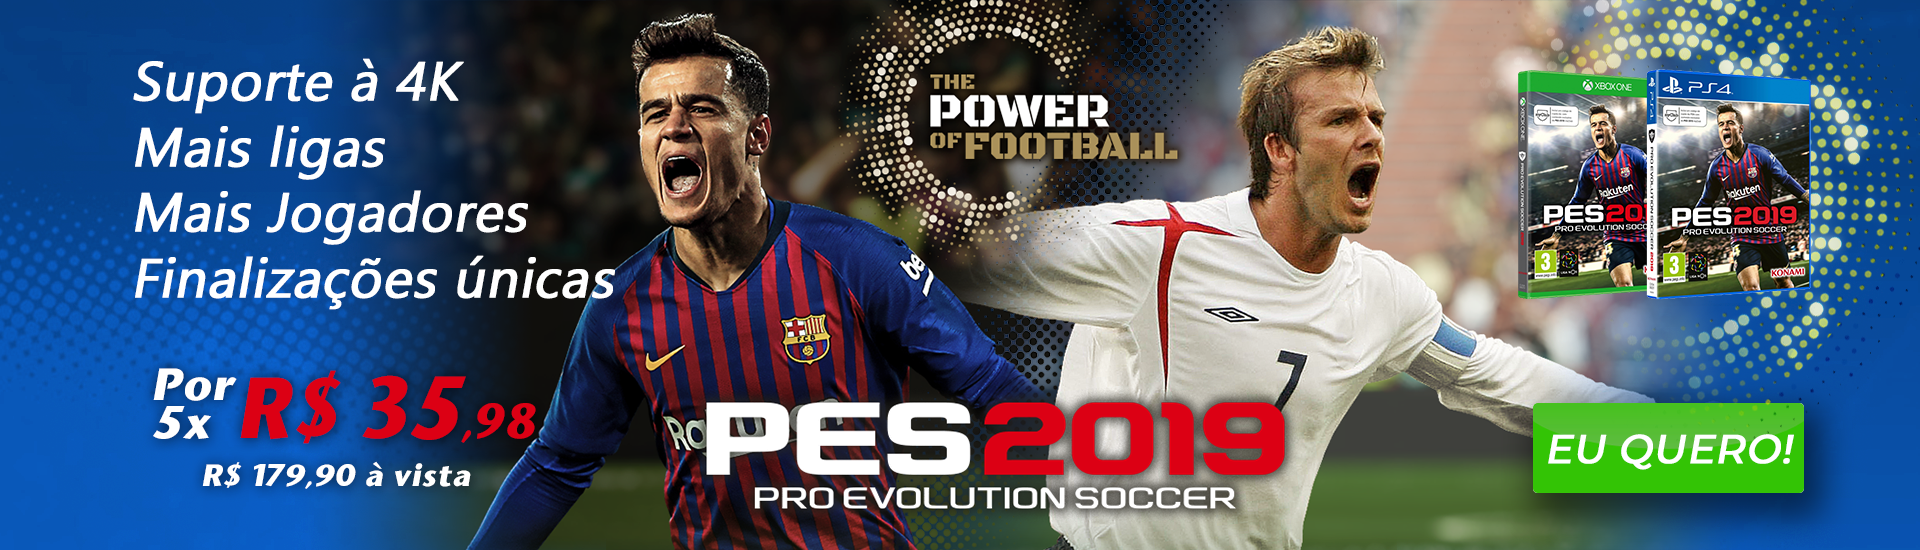 banner Pes 2019